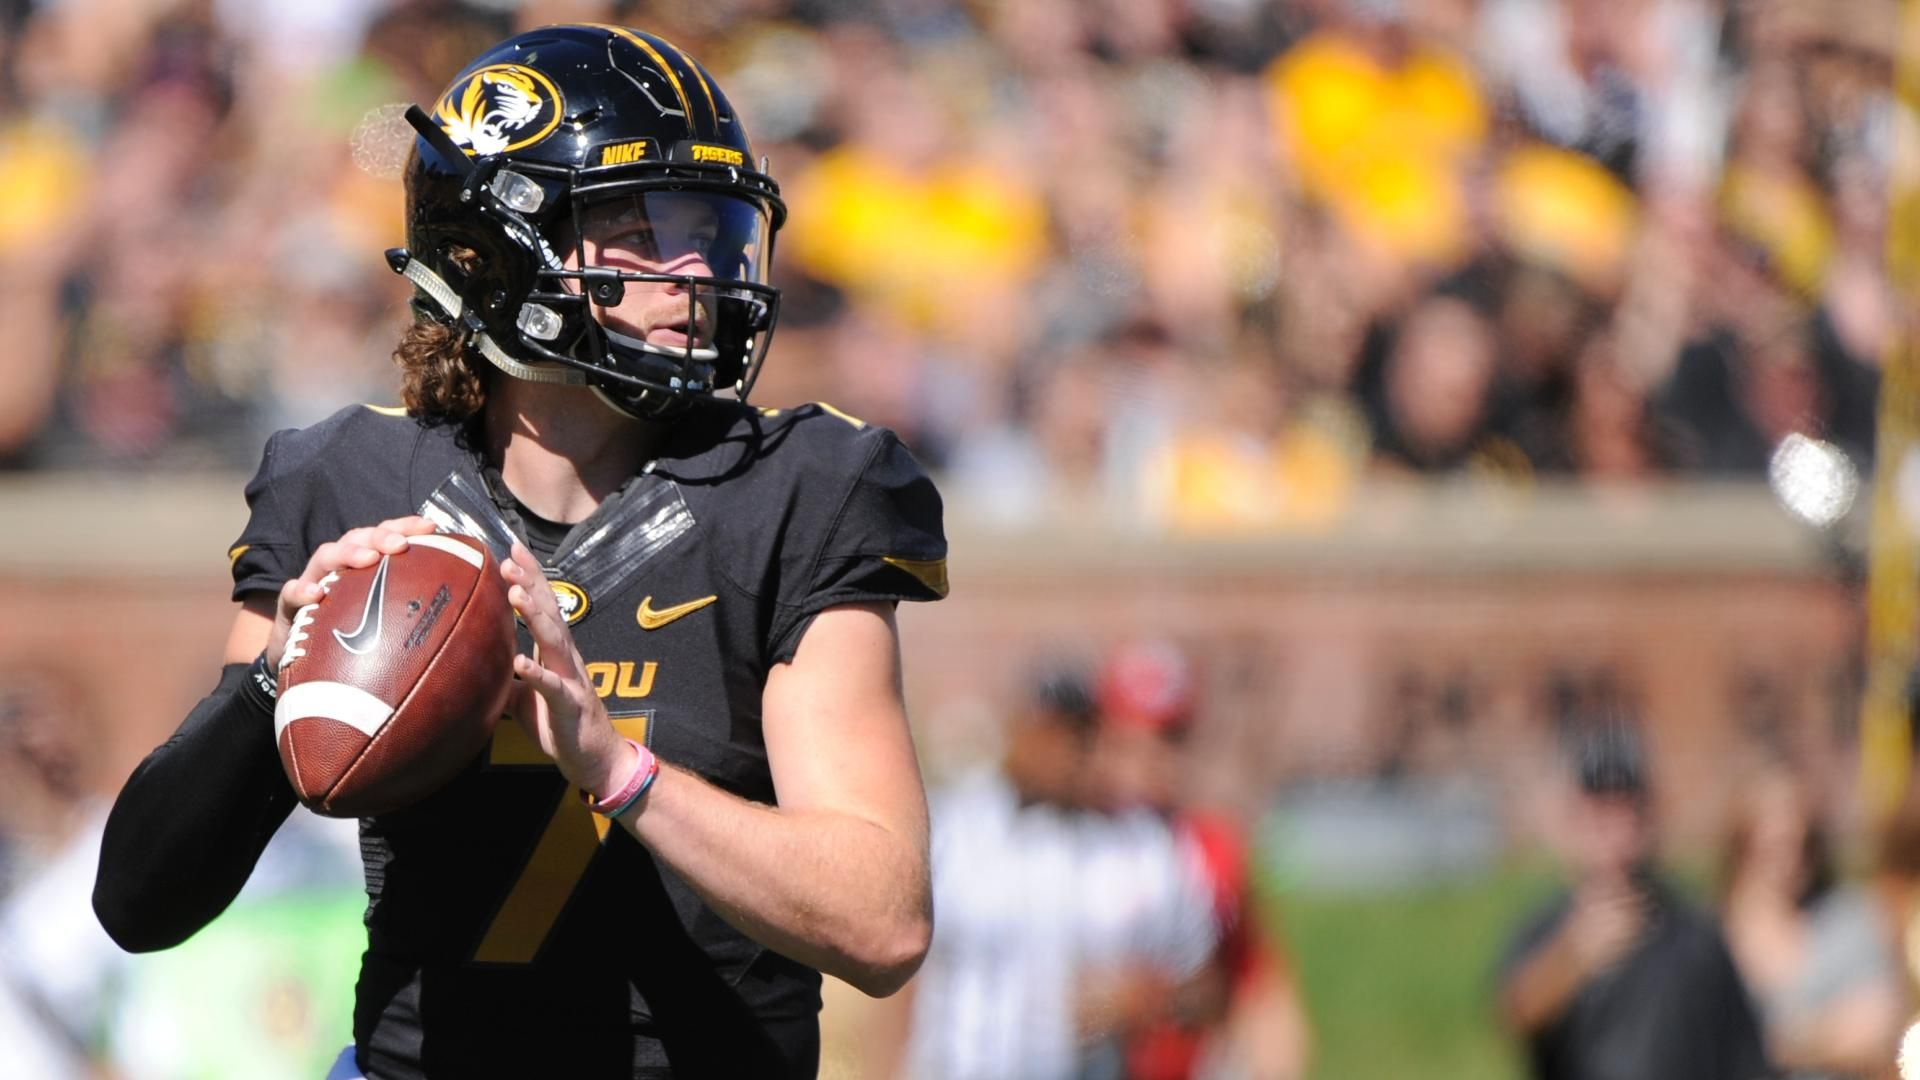 Russillo: 'Not a surprise' Missouri dismissed Mauk